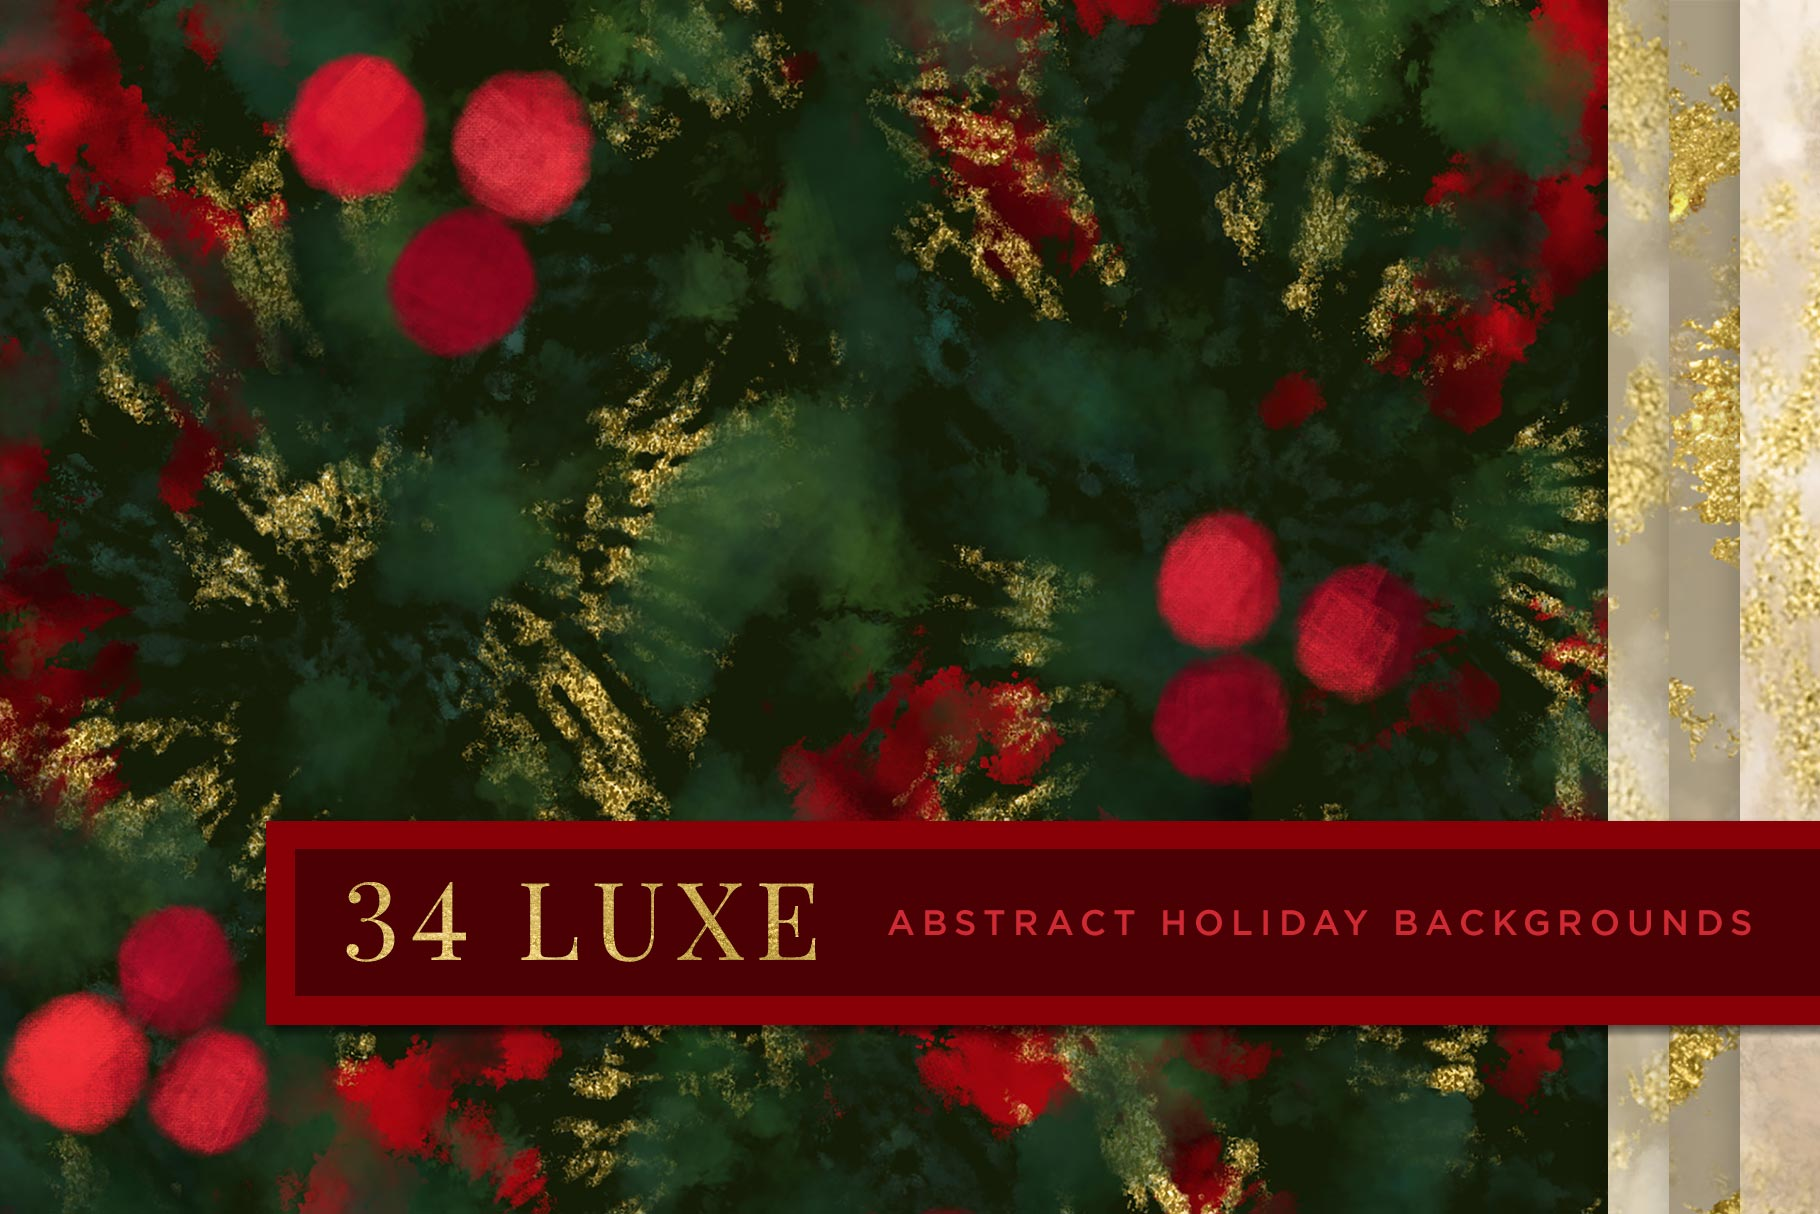 Luxe Christmas: Abstract Holiday Painted Backgrounds, cover image